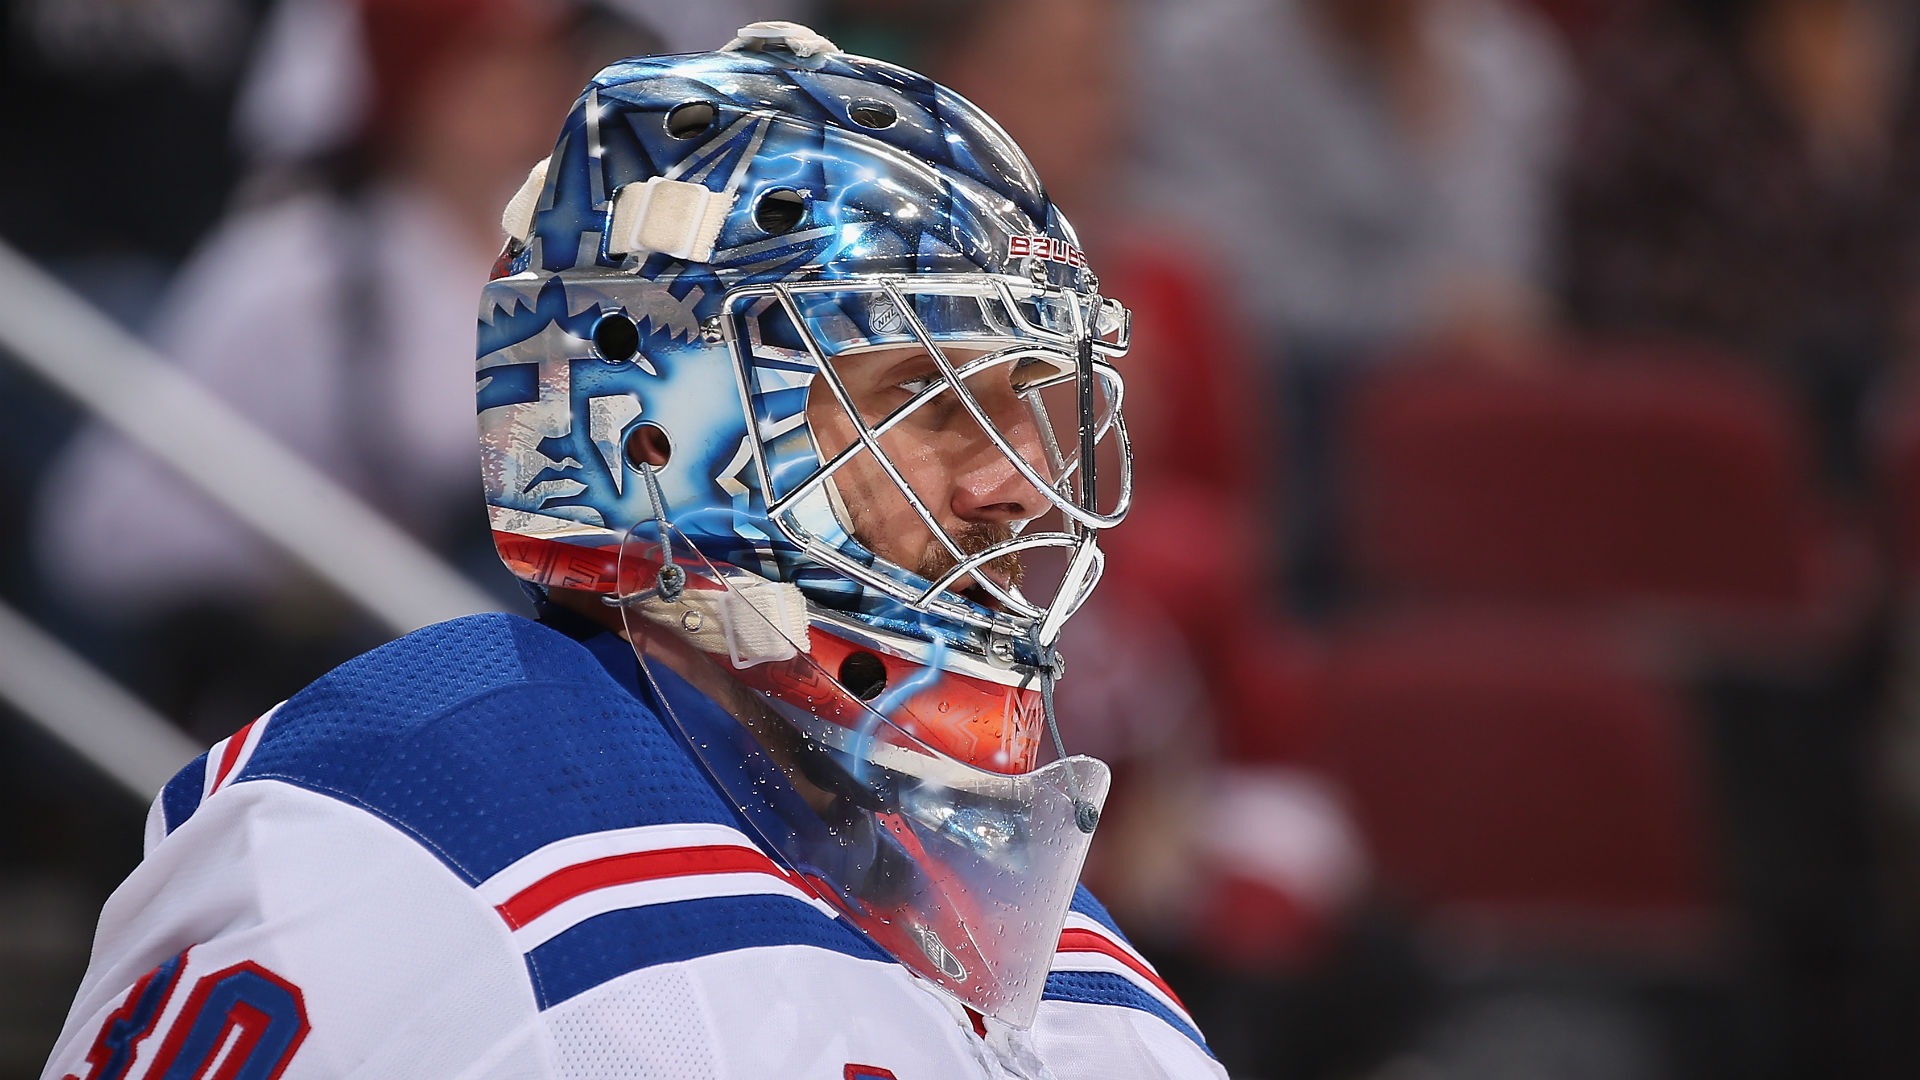 Rangers to buy out goalie Henrik Lundqvist, per reports; ends 15-year career in New York